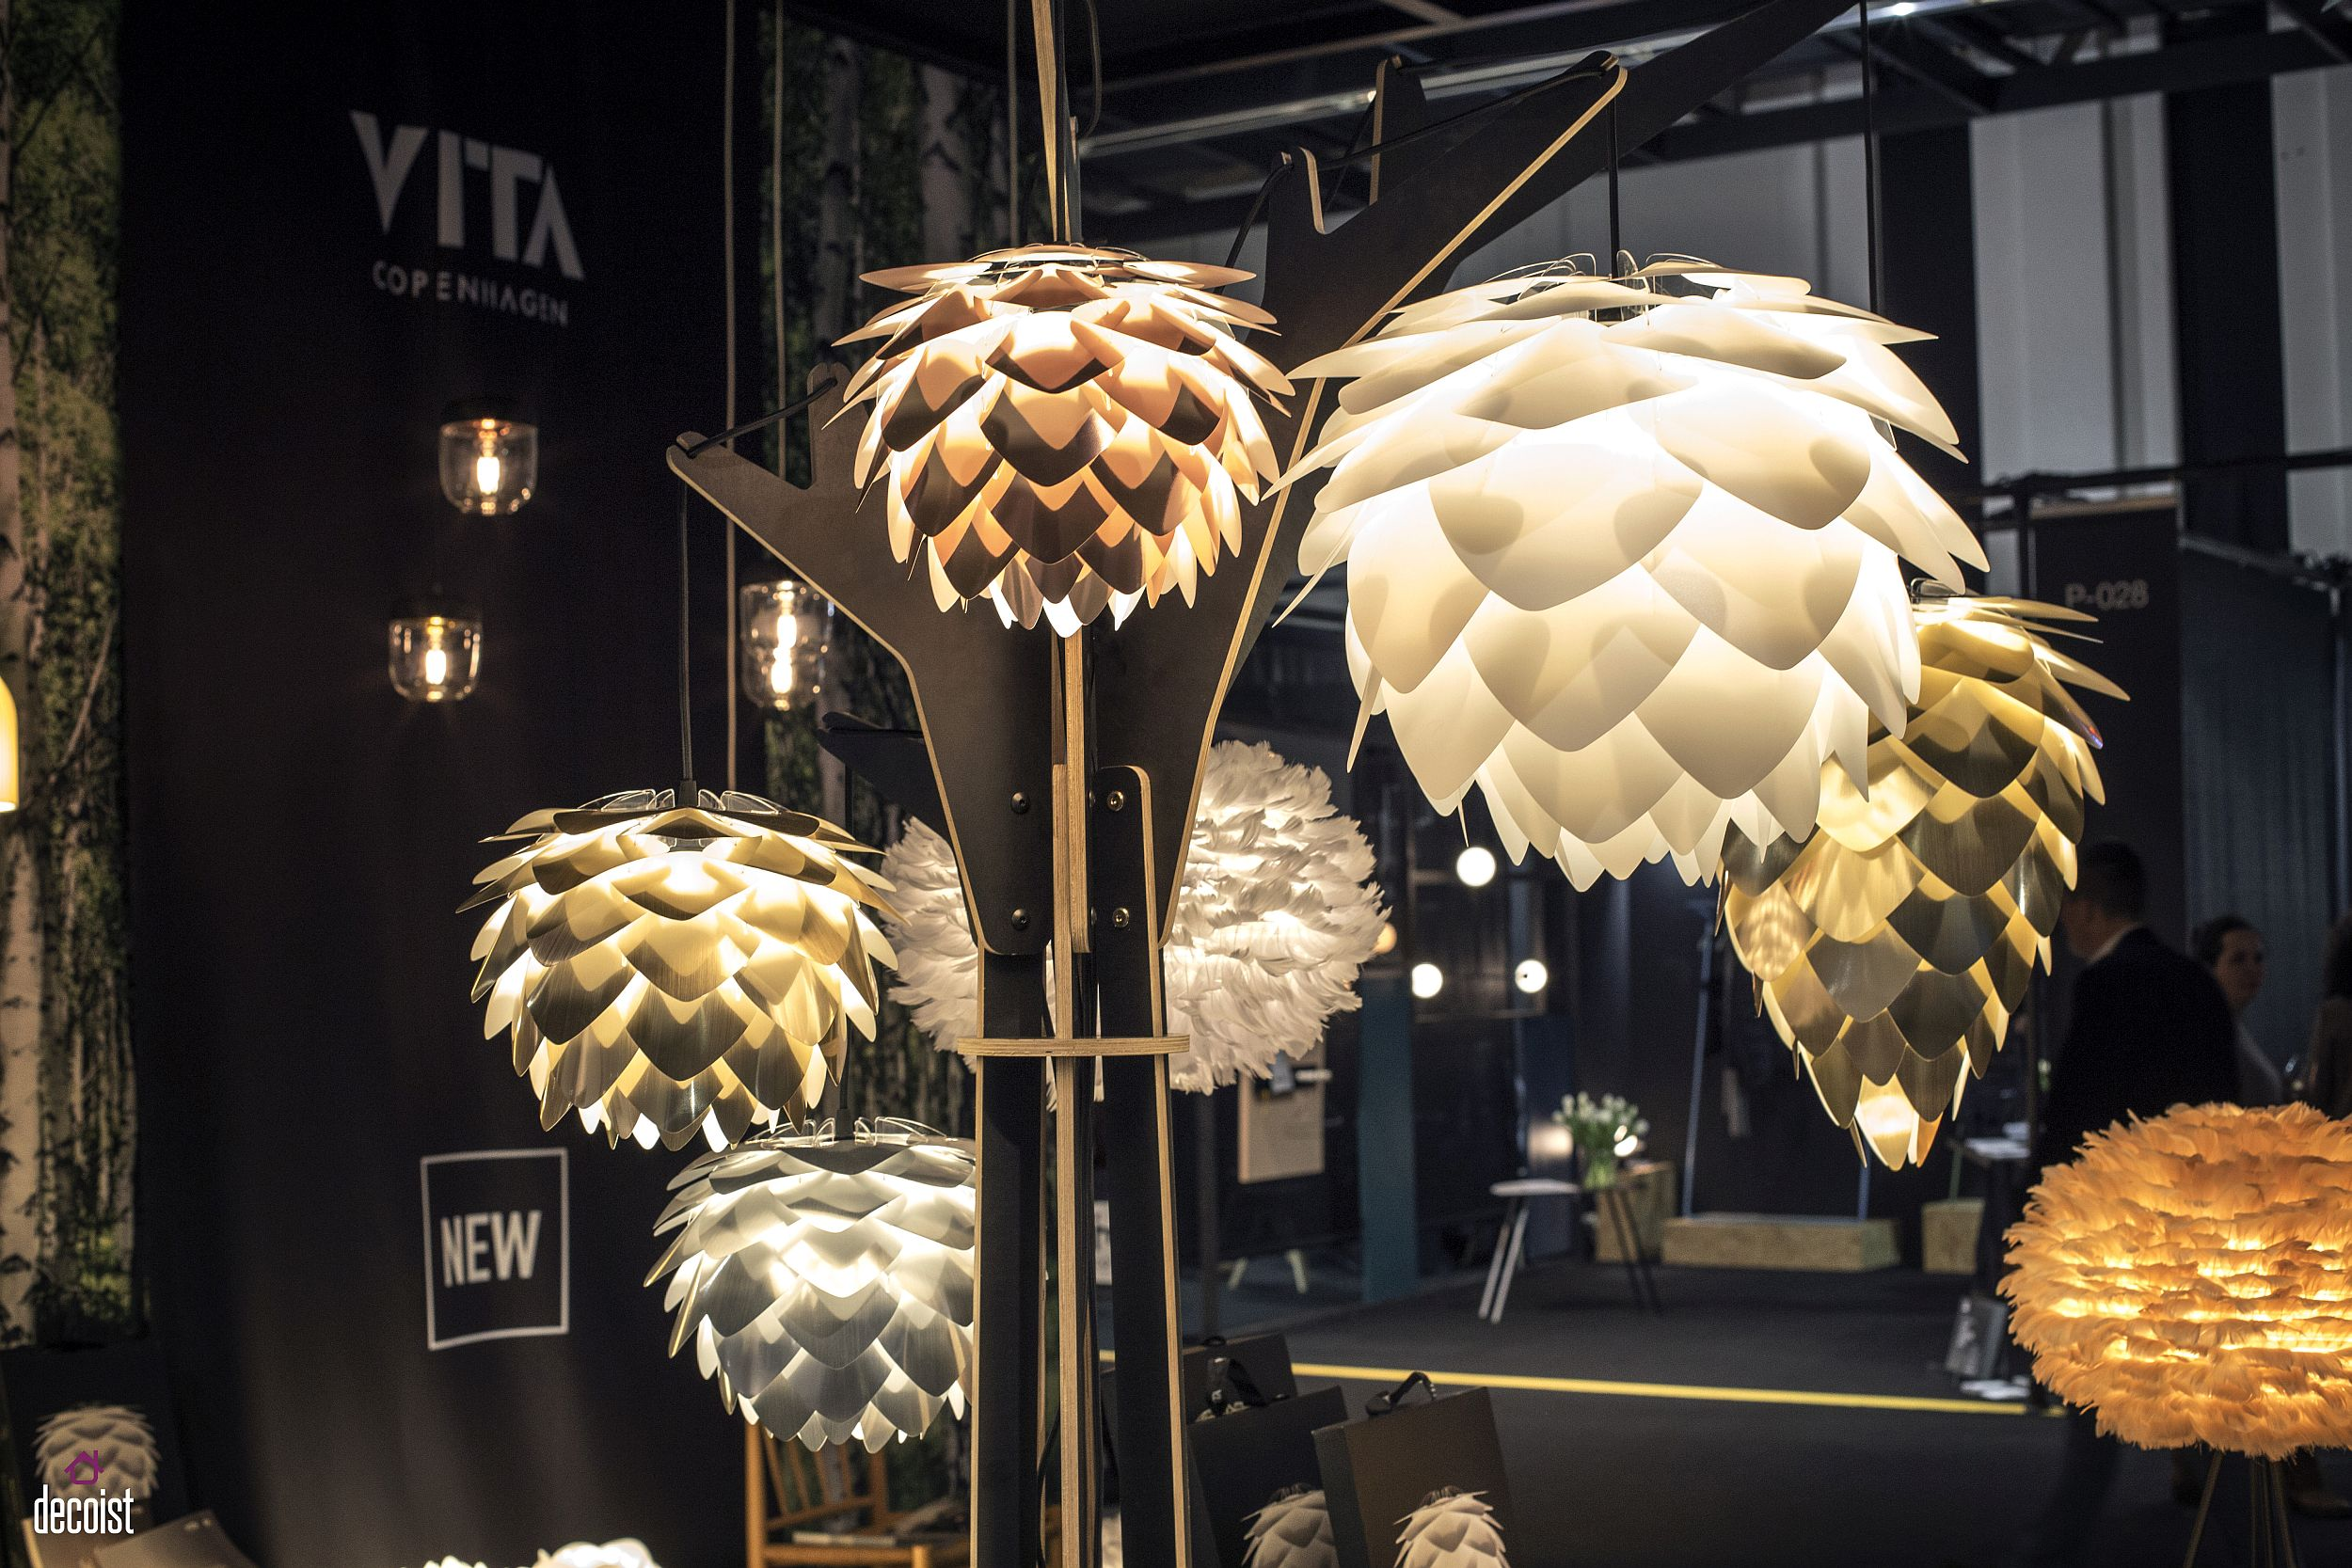 Flowery lighting fixtures from Vita are bound to steal the spotlight in any room they adorn